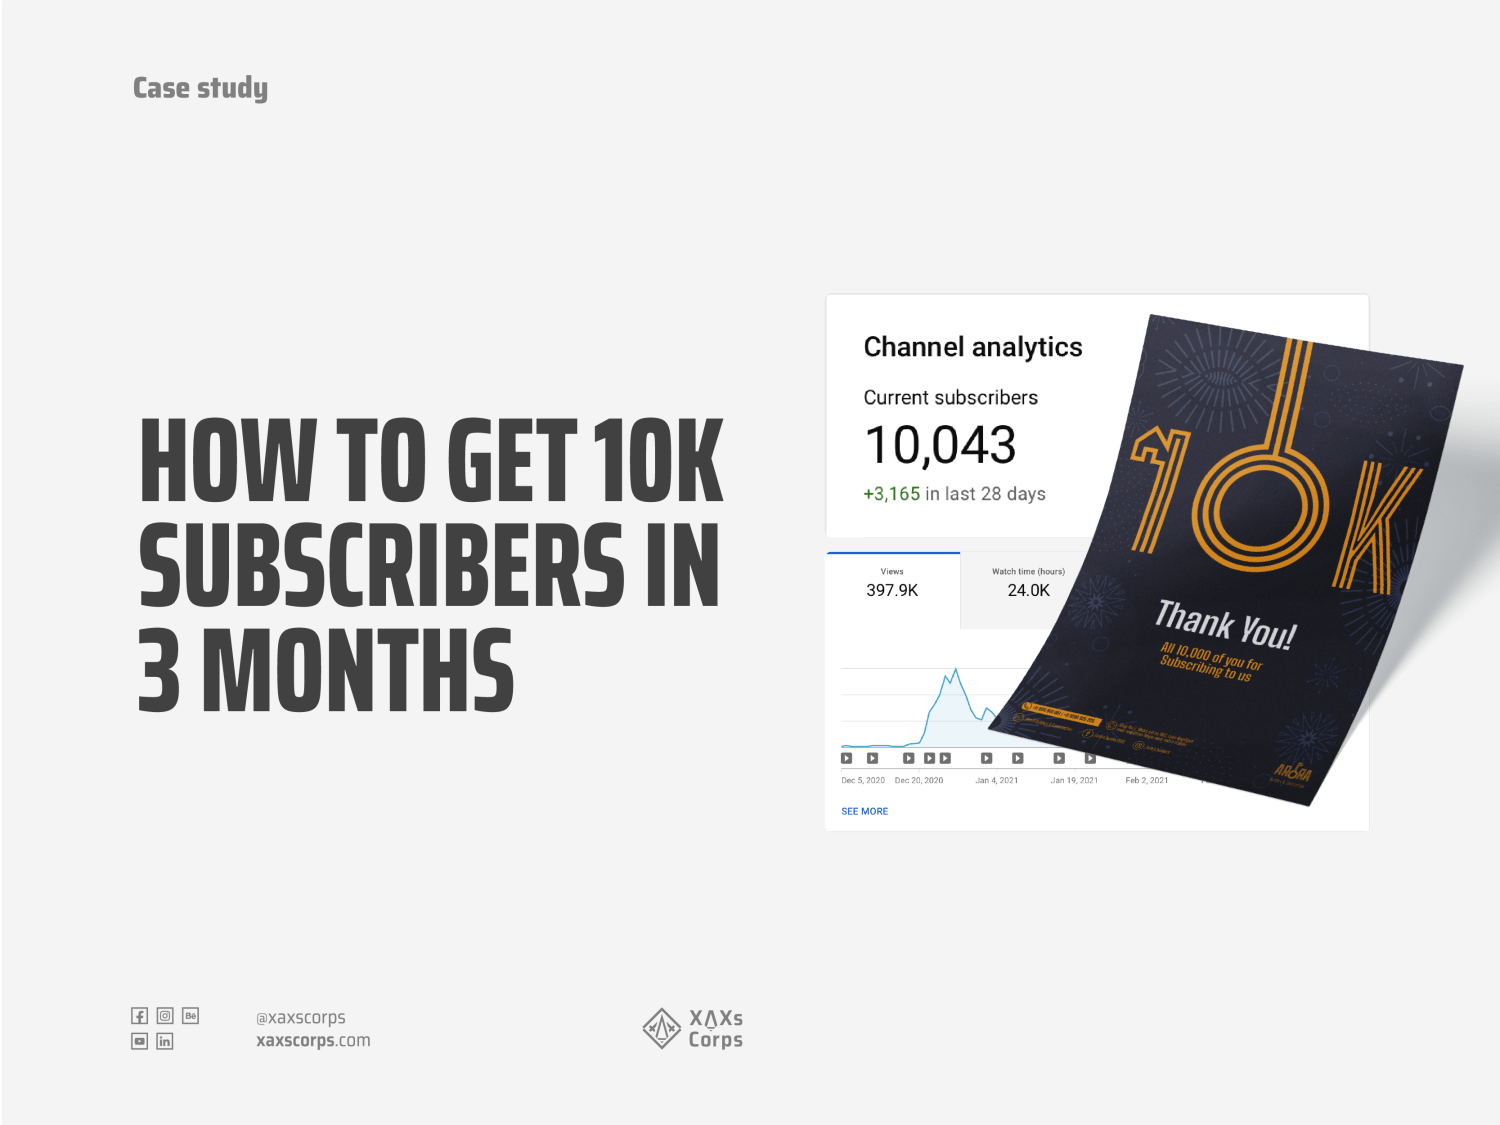 How to get 10k Subs handbook by XAXs